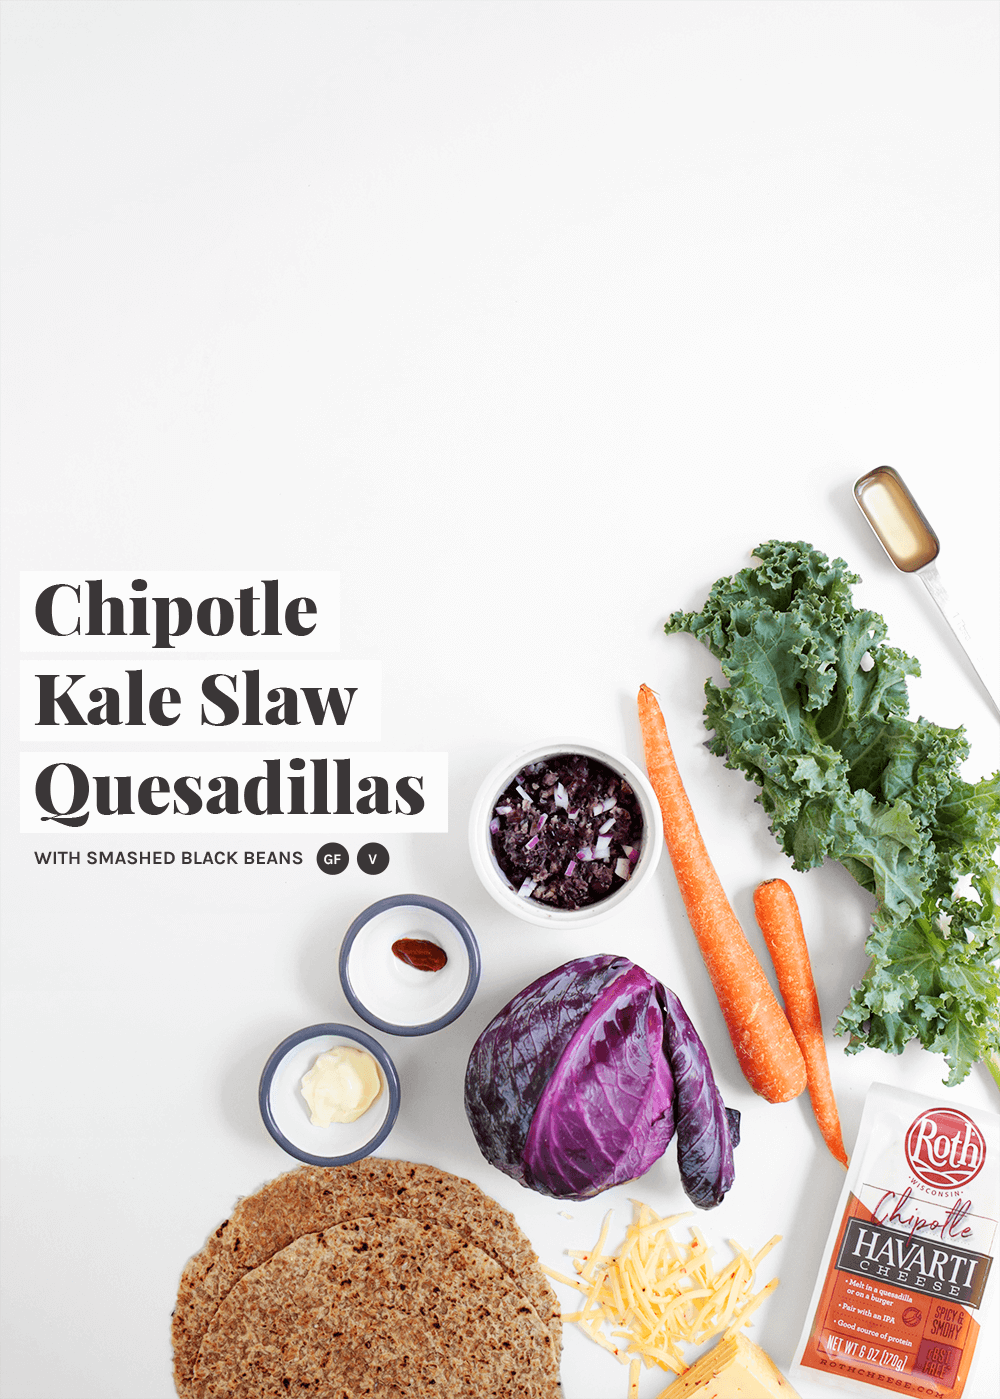 Chipotle Kale Slaw Quesadillas from the faux martha